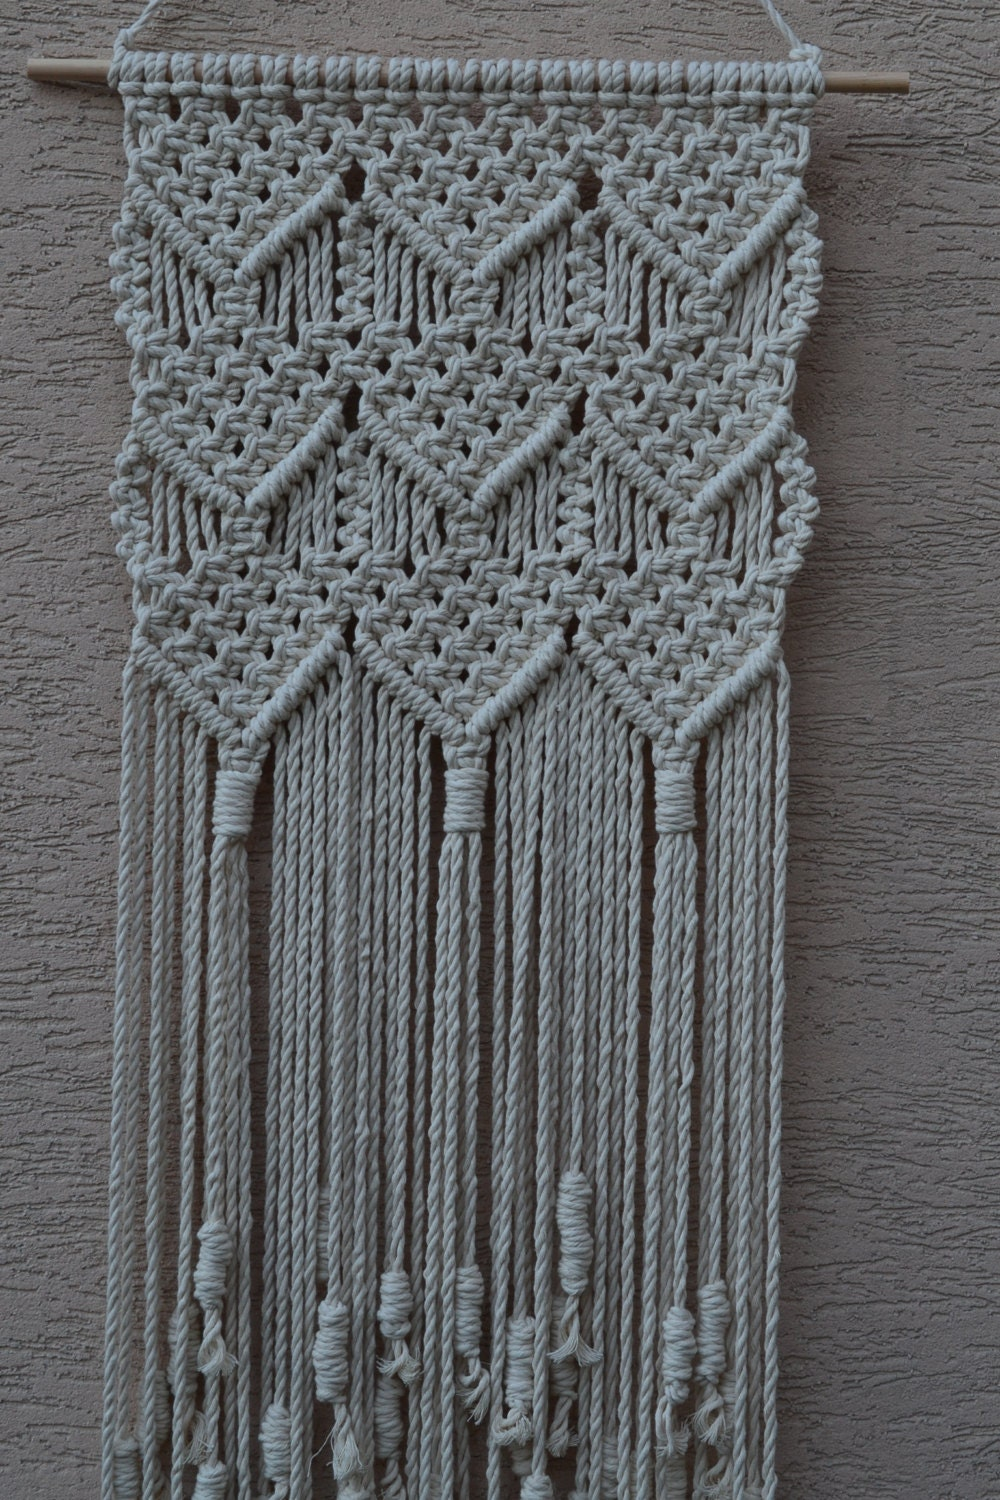 modern macrame patterns home decorative modern macrame wall hanging b01n5plnw0 2864